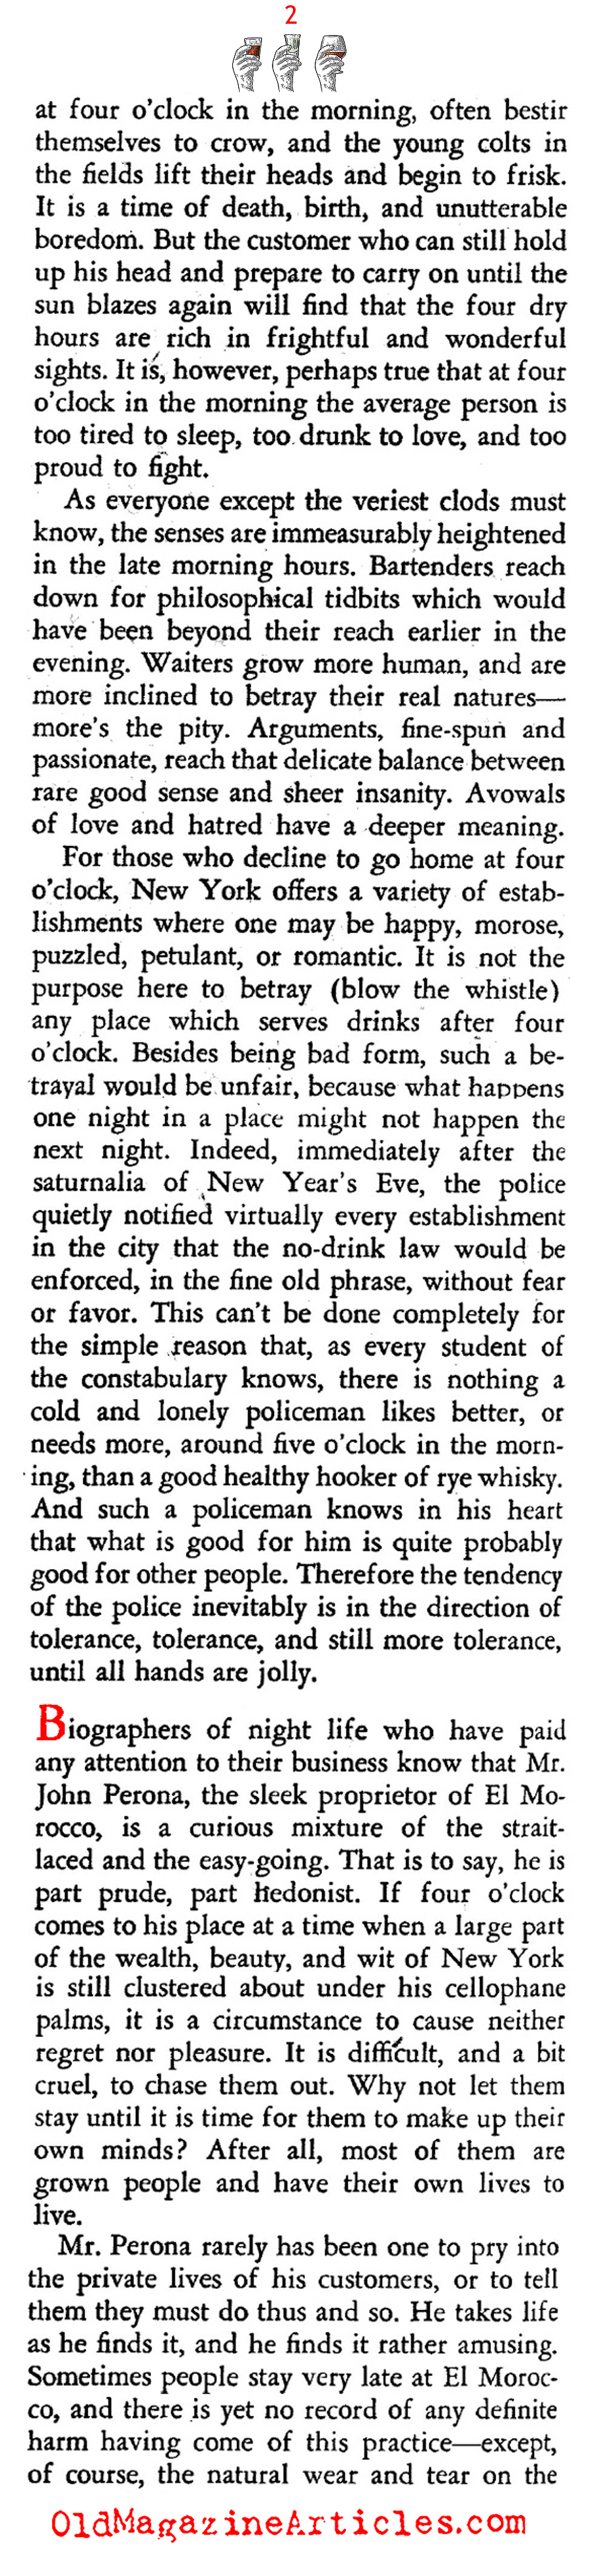 New York City Bars at Four in the Morning... (Stage Magazine, 1937)